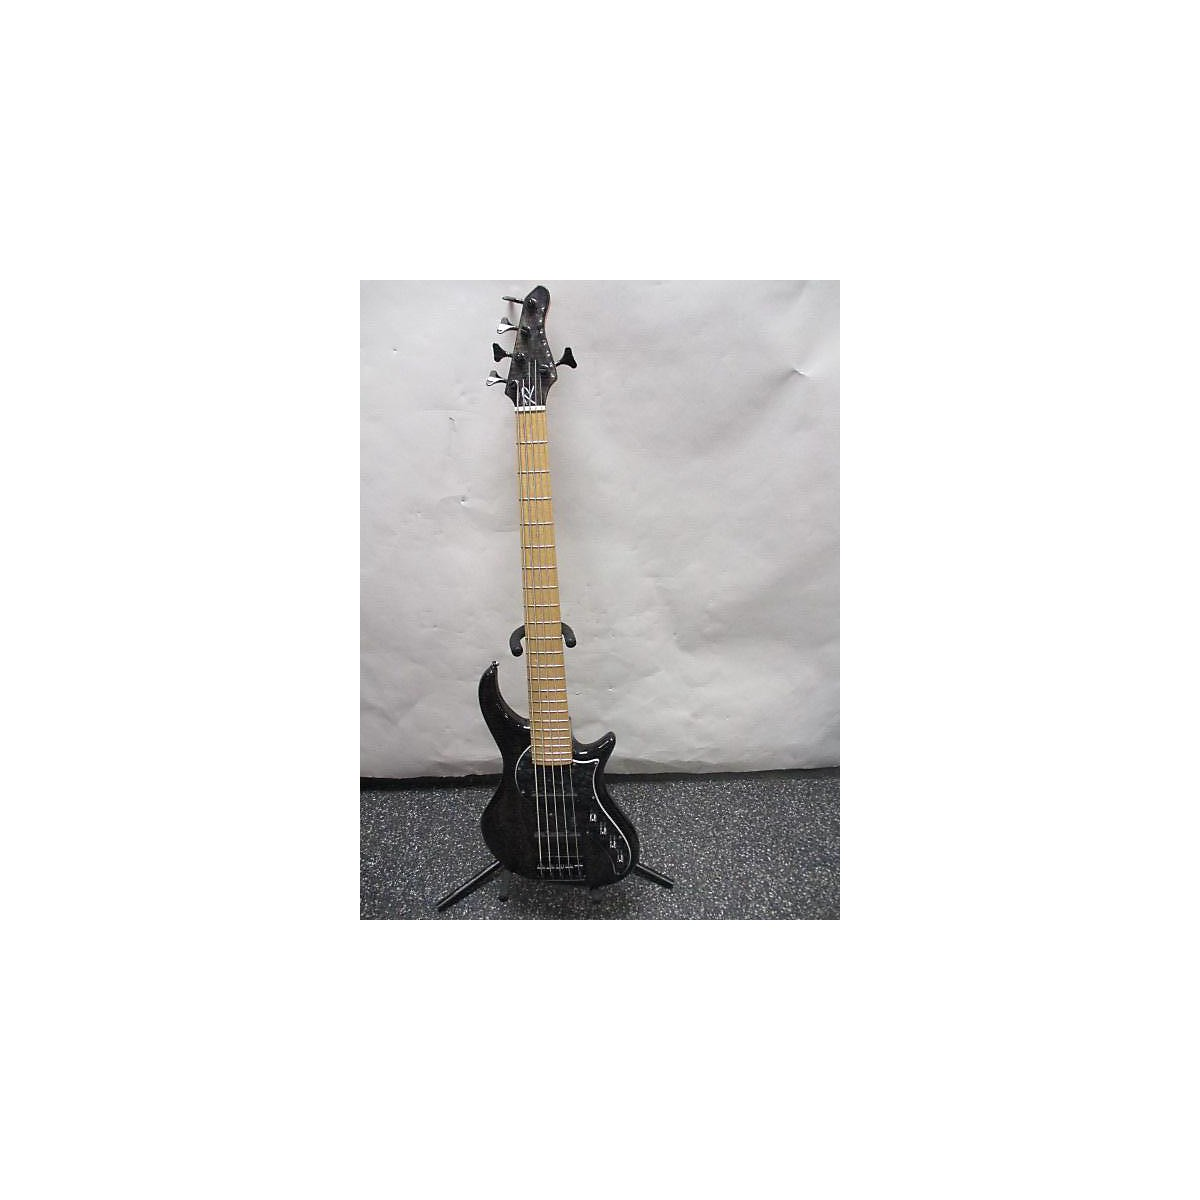 Pedulla Rapture RB5 5 String Flame Maple Top Electric Bass Guitar